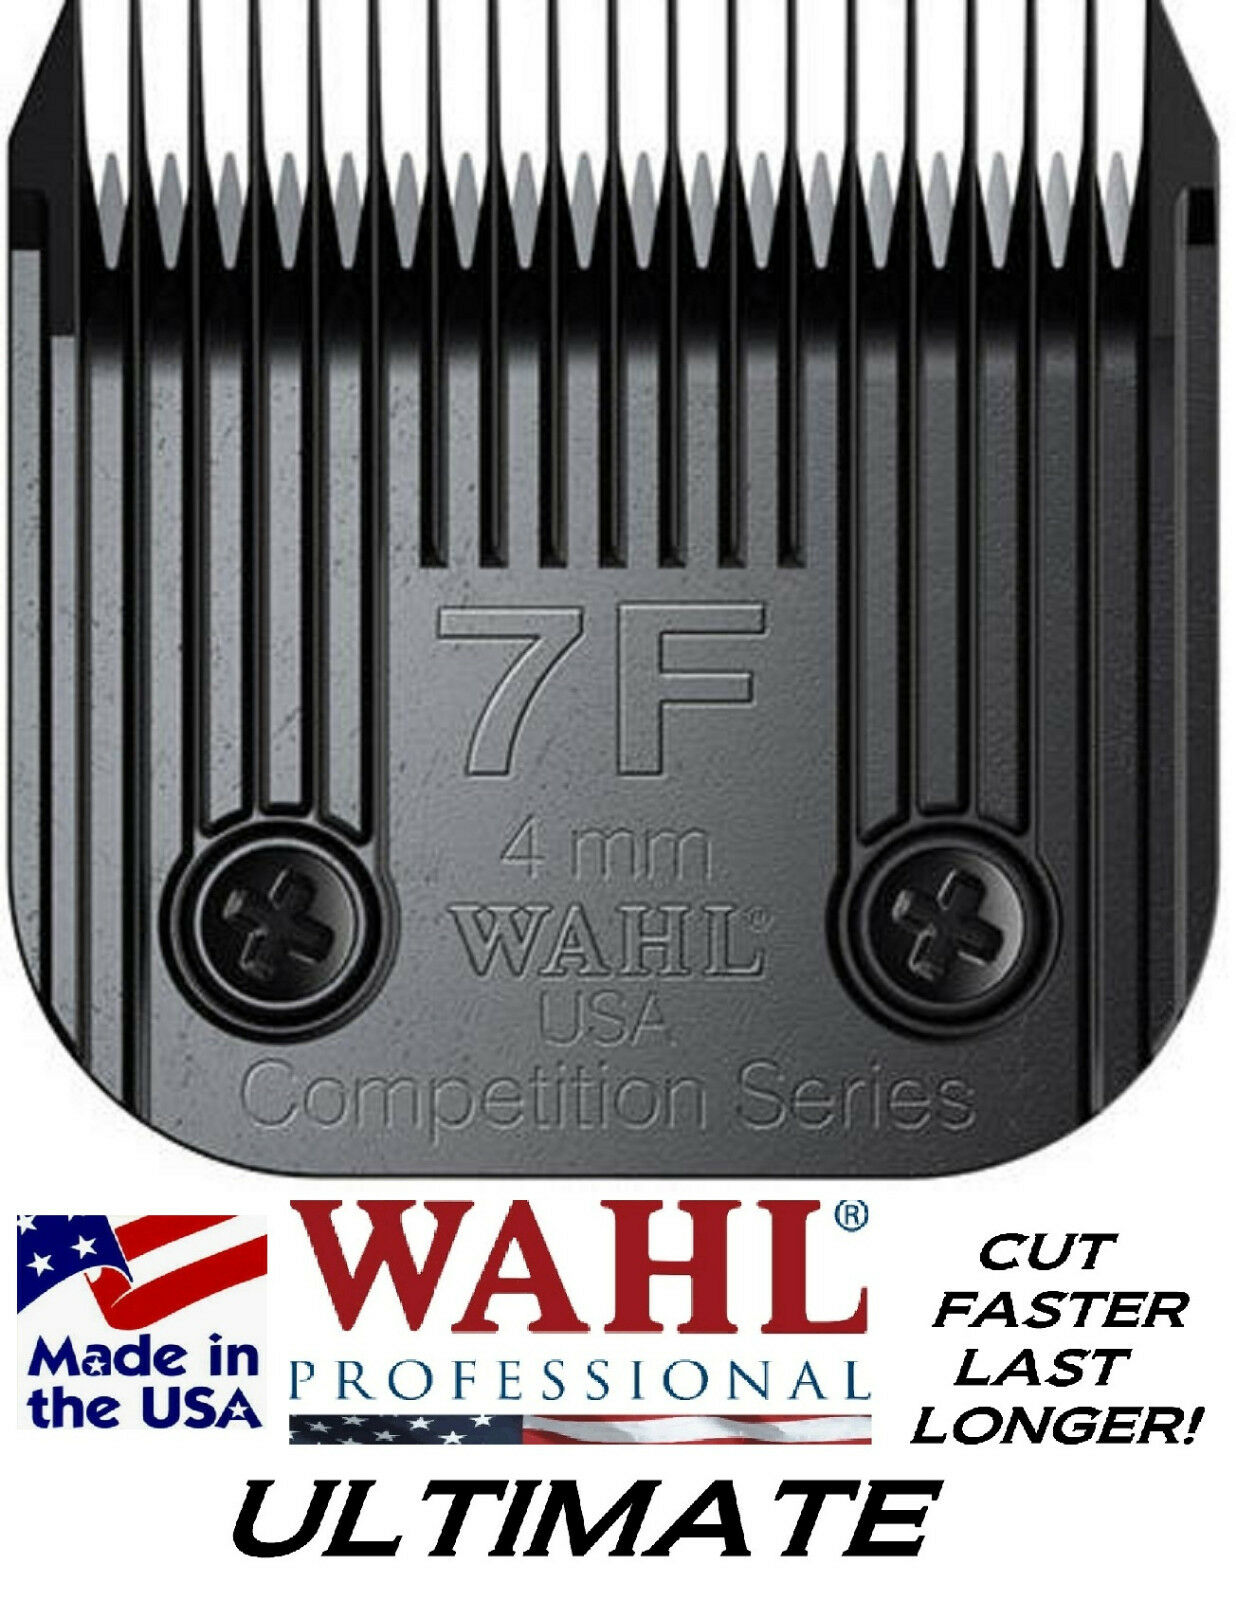 Wahl ULTIMATE COMPETITION Series A5 Clipper 7F BLADE 5 32 -4mmCUTS 3x FASTER